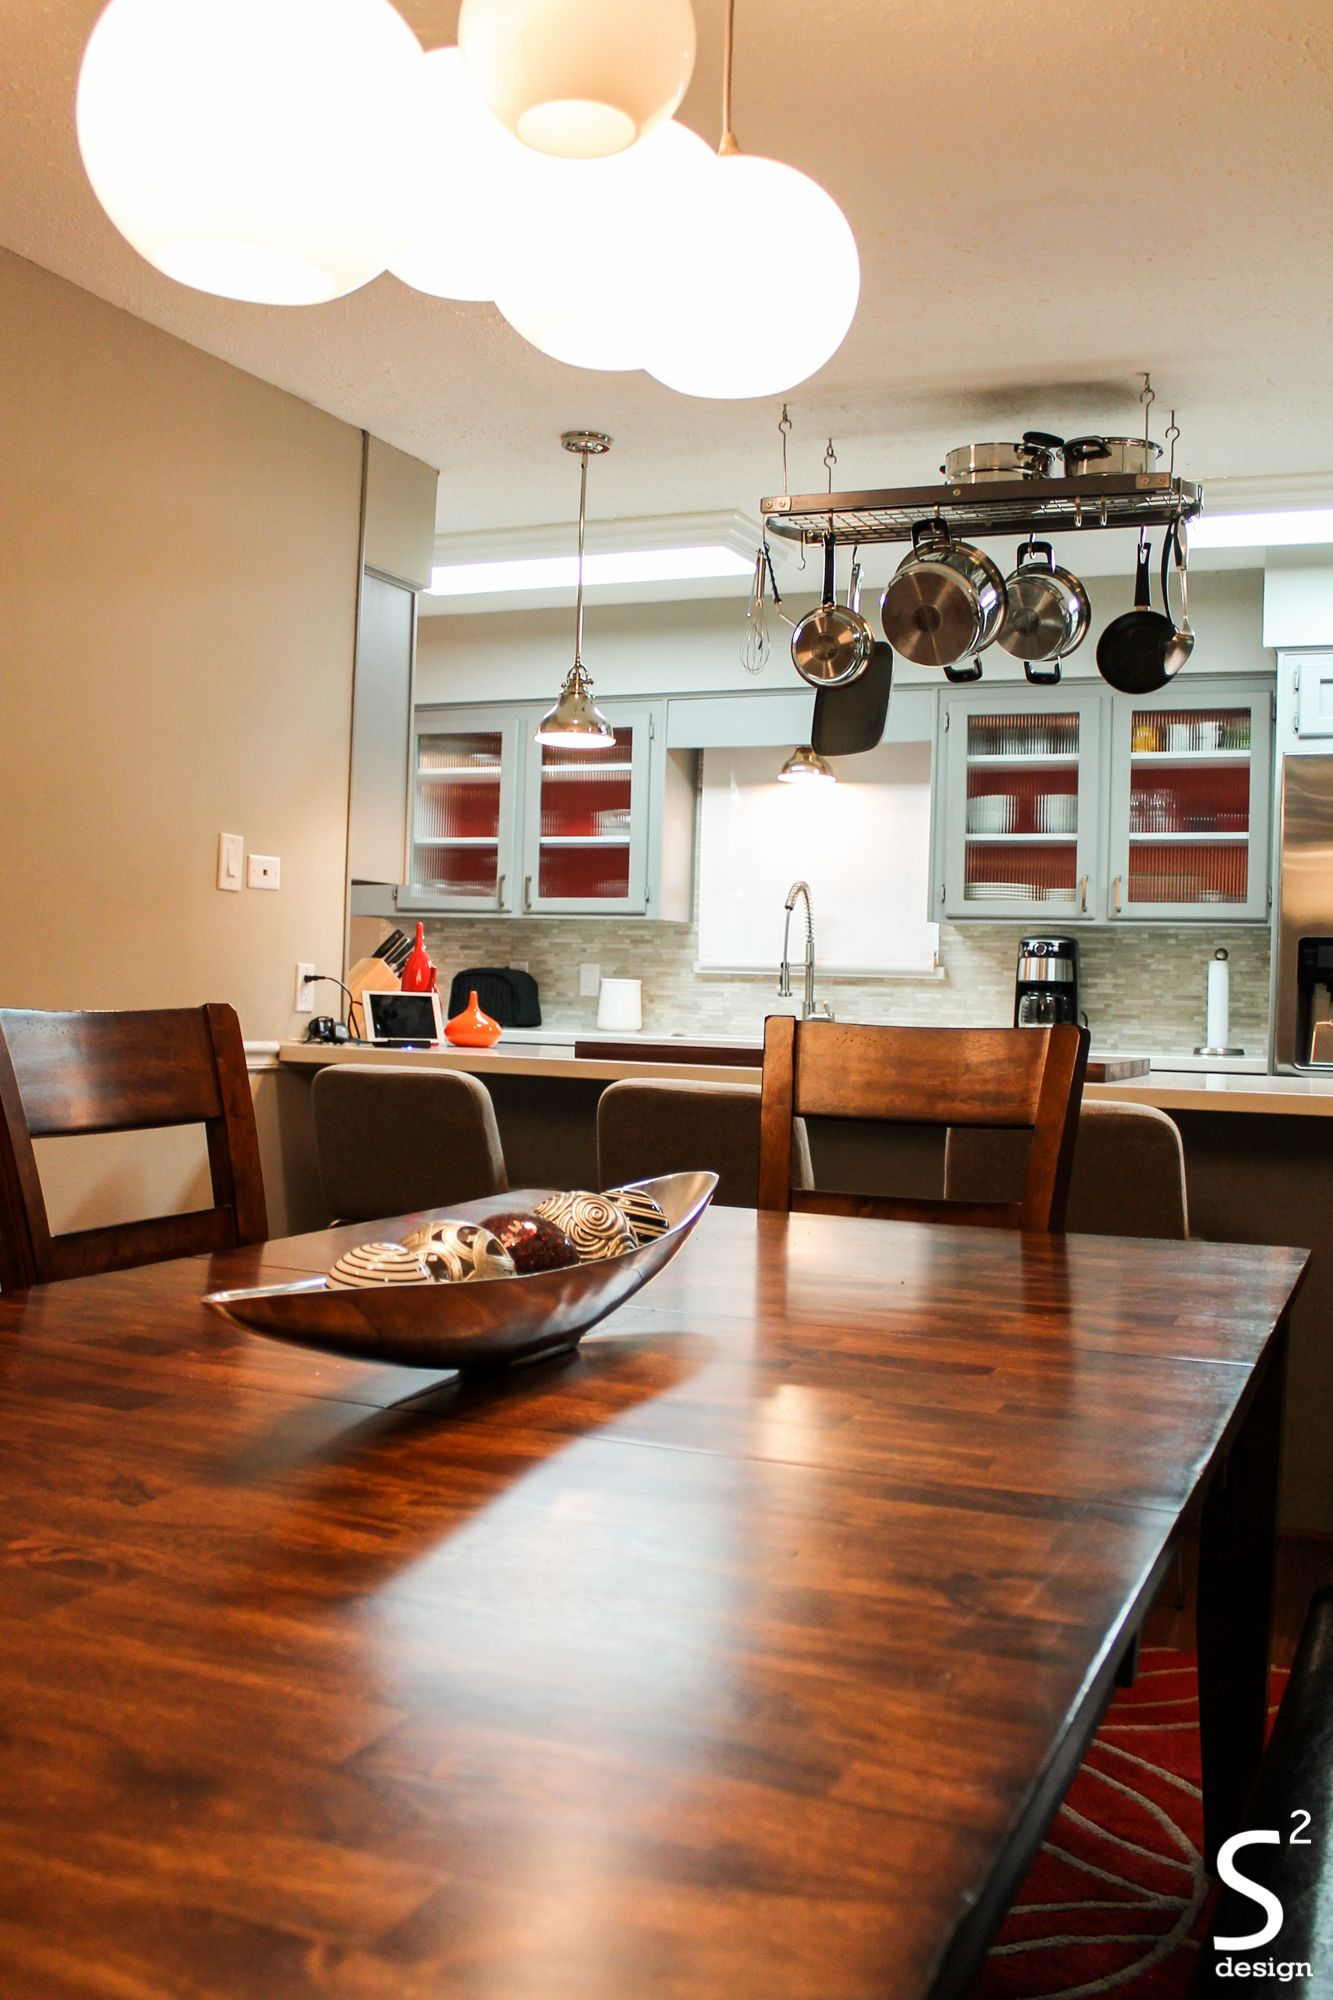 Red Kitchen Pendant Lights Dining Room Kitchen Grey Cabinets Red Accent Pot Rack Mid Century